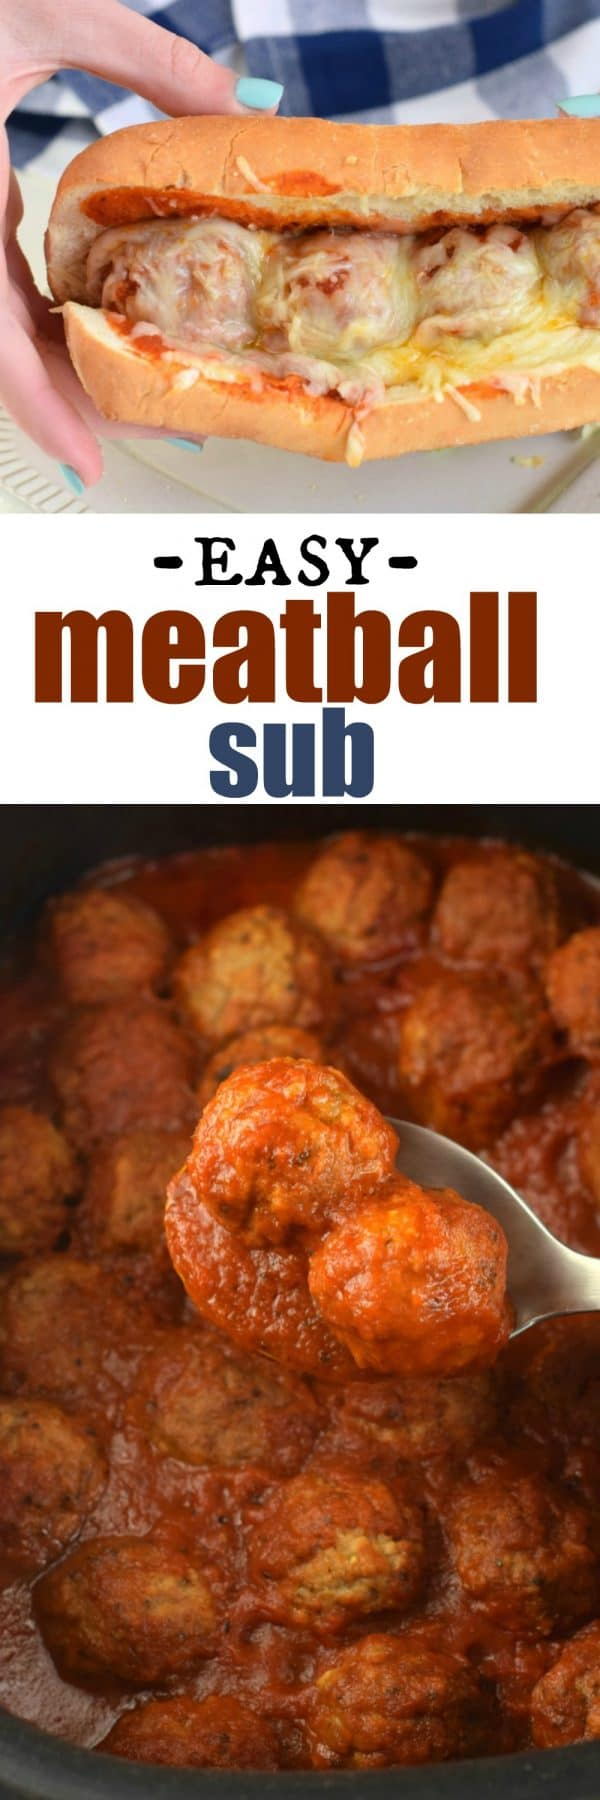 Easy, Italian Meatball Sub recipe made from homemade meatballs, delicious marinara sauce, served toasted with extra cheese! The perfect weeknight dinner.